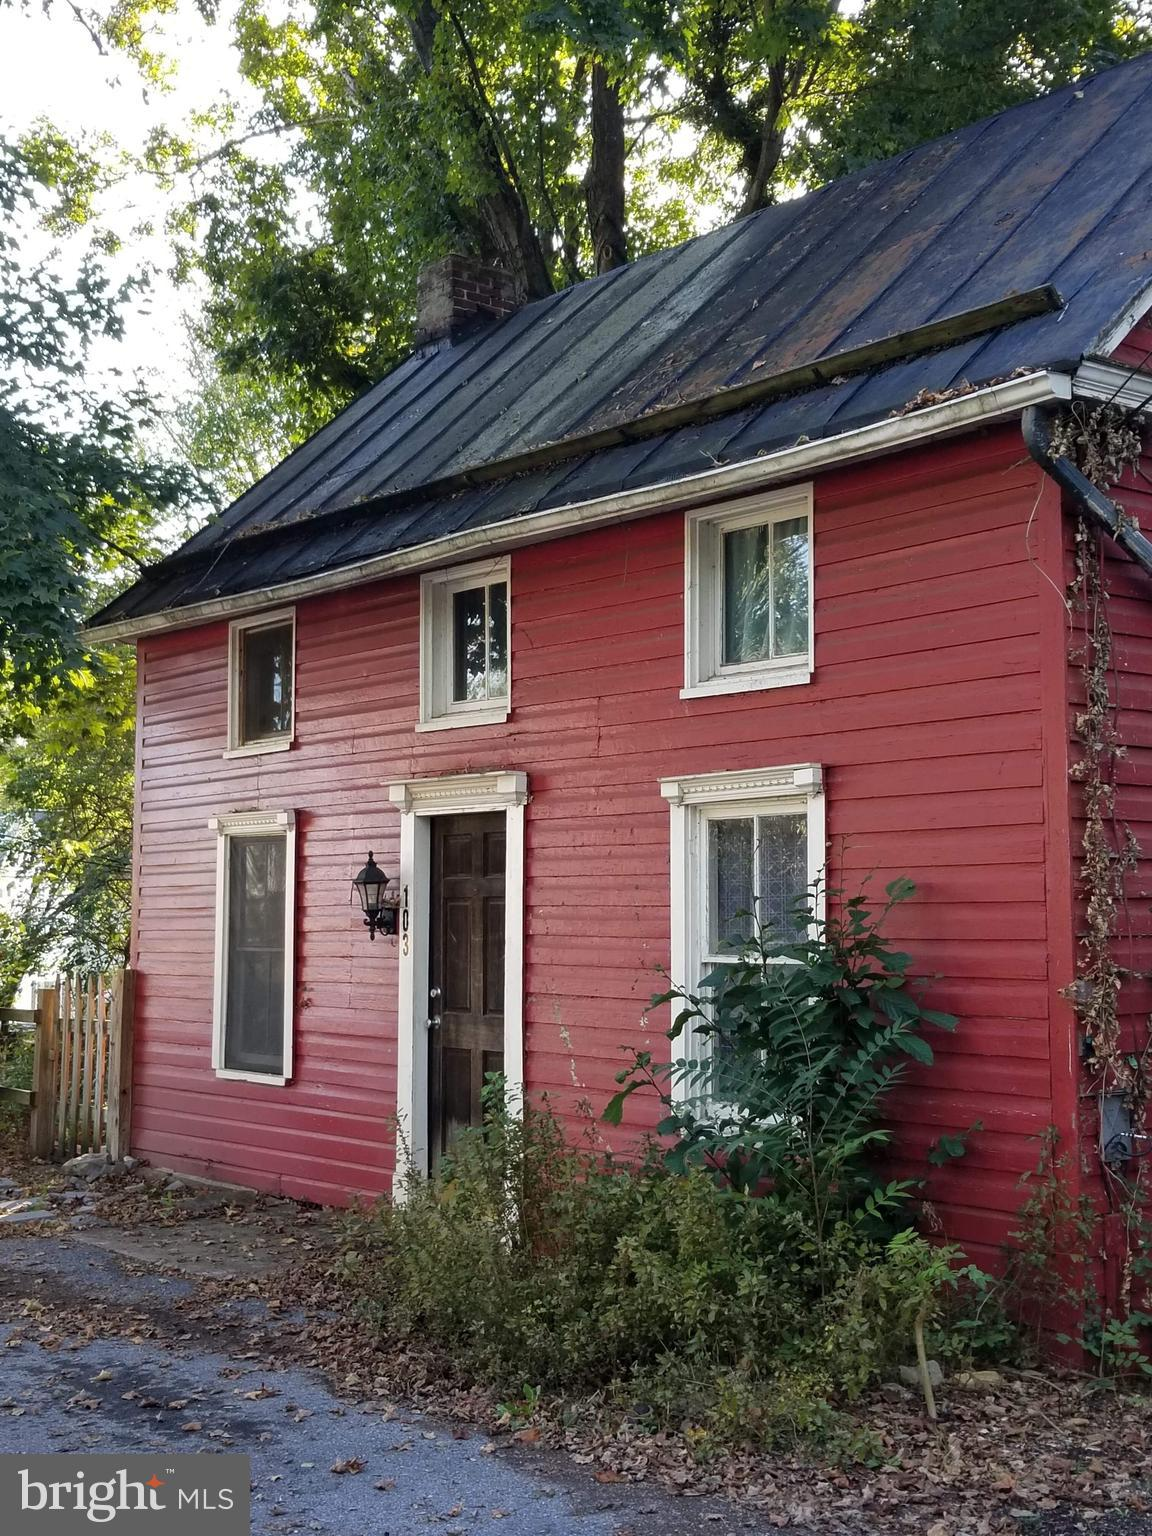 Charming 3 BR, 1BA in Shepherdstown. Walking distance to restaurants, shopping, and University. Wood